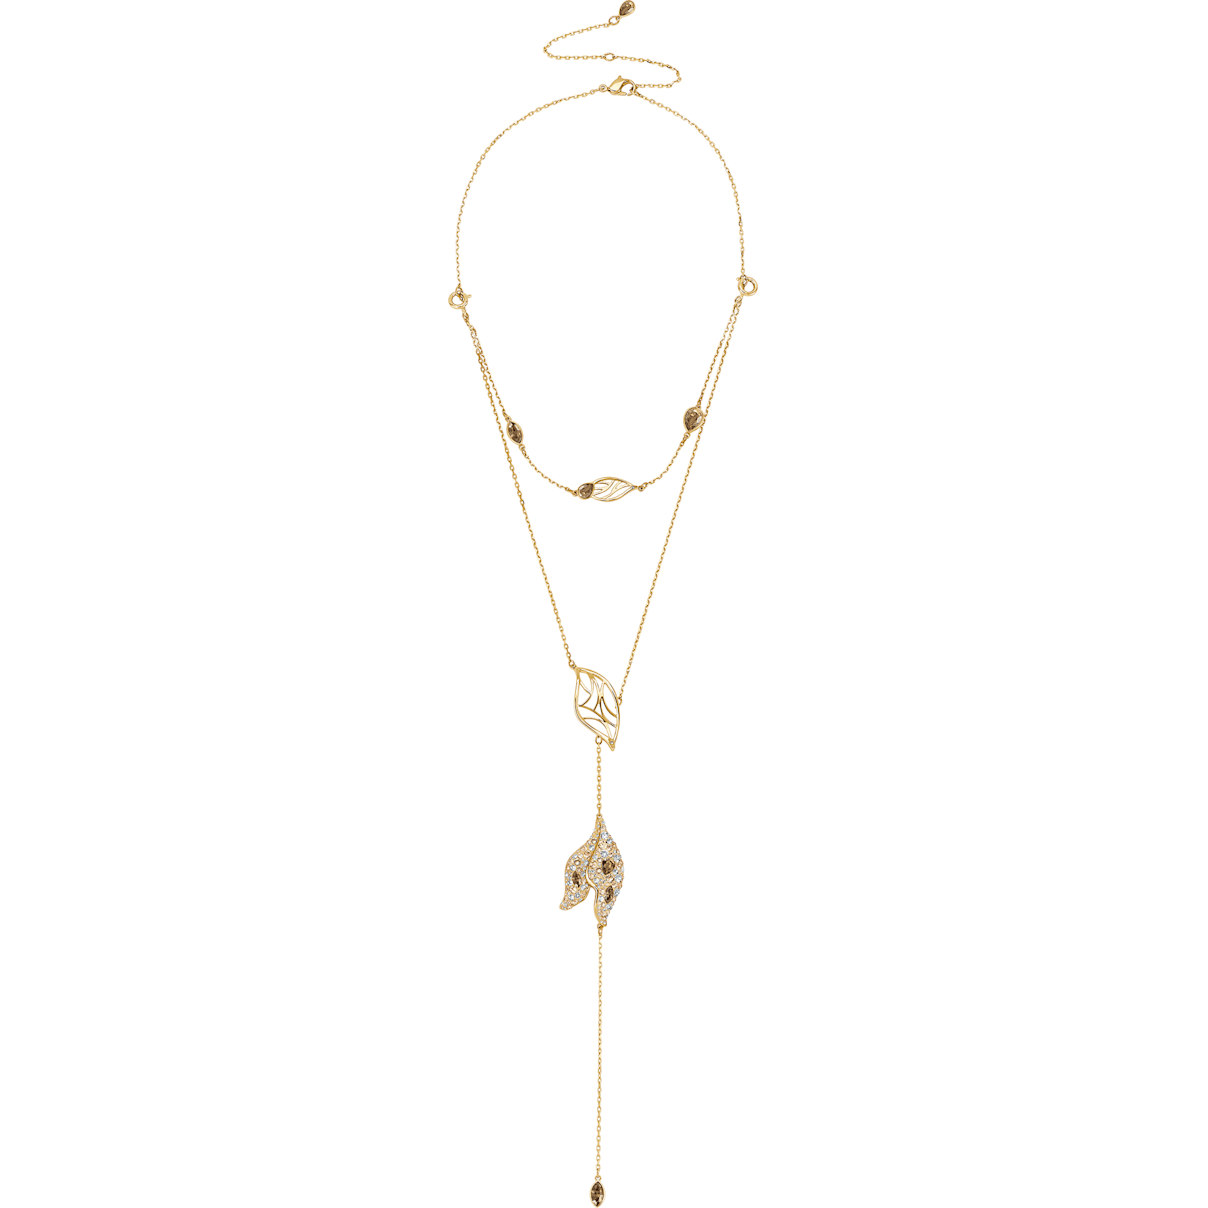 Swarovski Graceful Bloom Detachable Necklace, Brown, Gold-tone plated